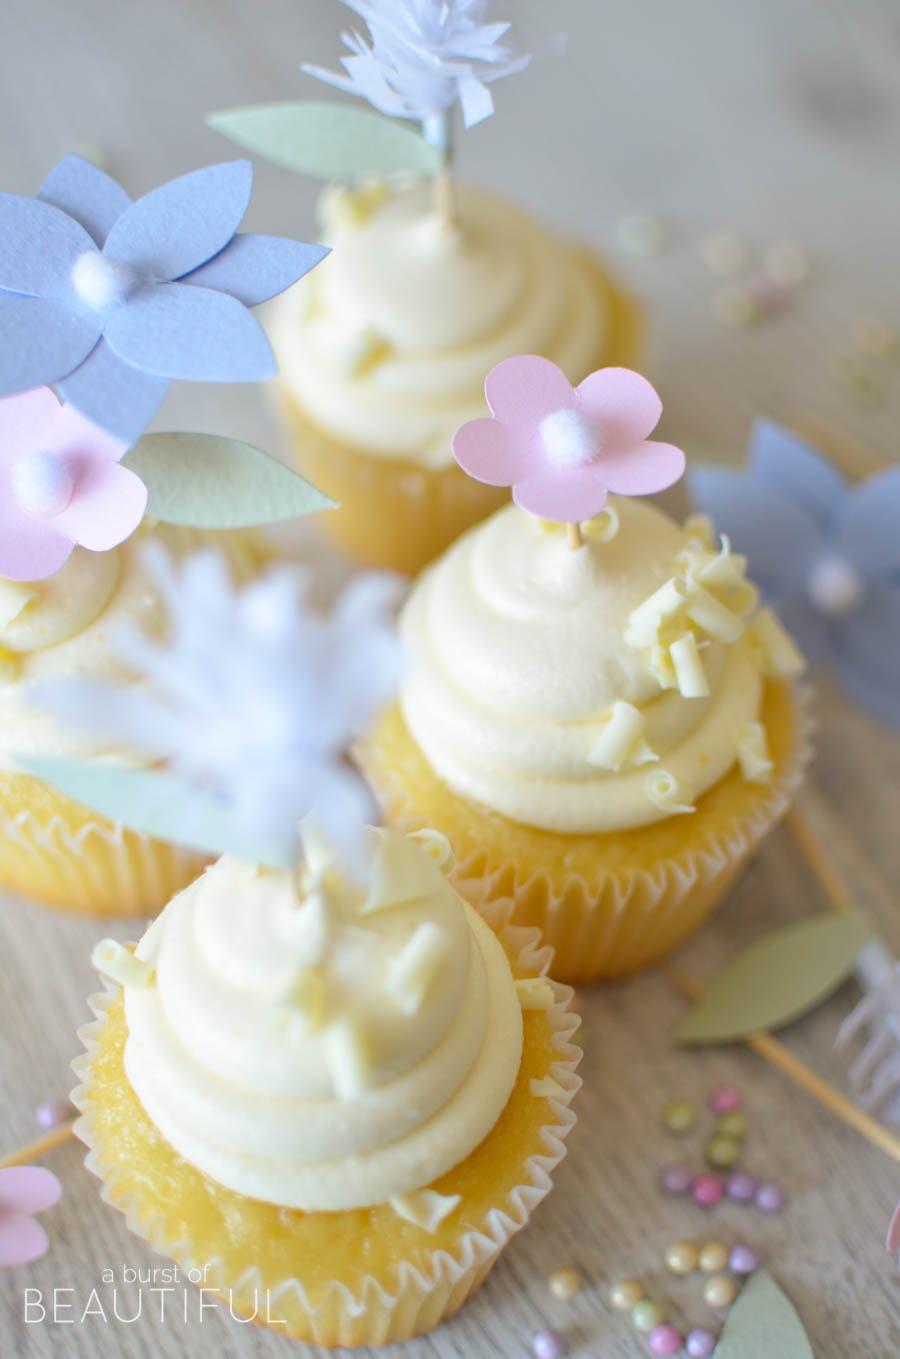 Add a whimsical touch to your next special event with these pretty DIY flower cupcake toppers | A Burst of Beautiful